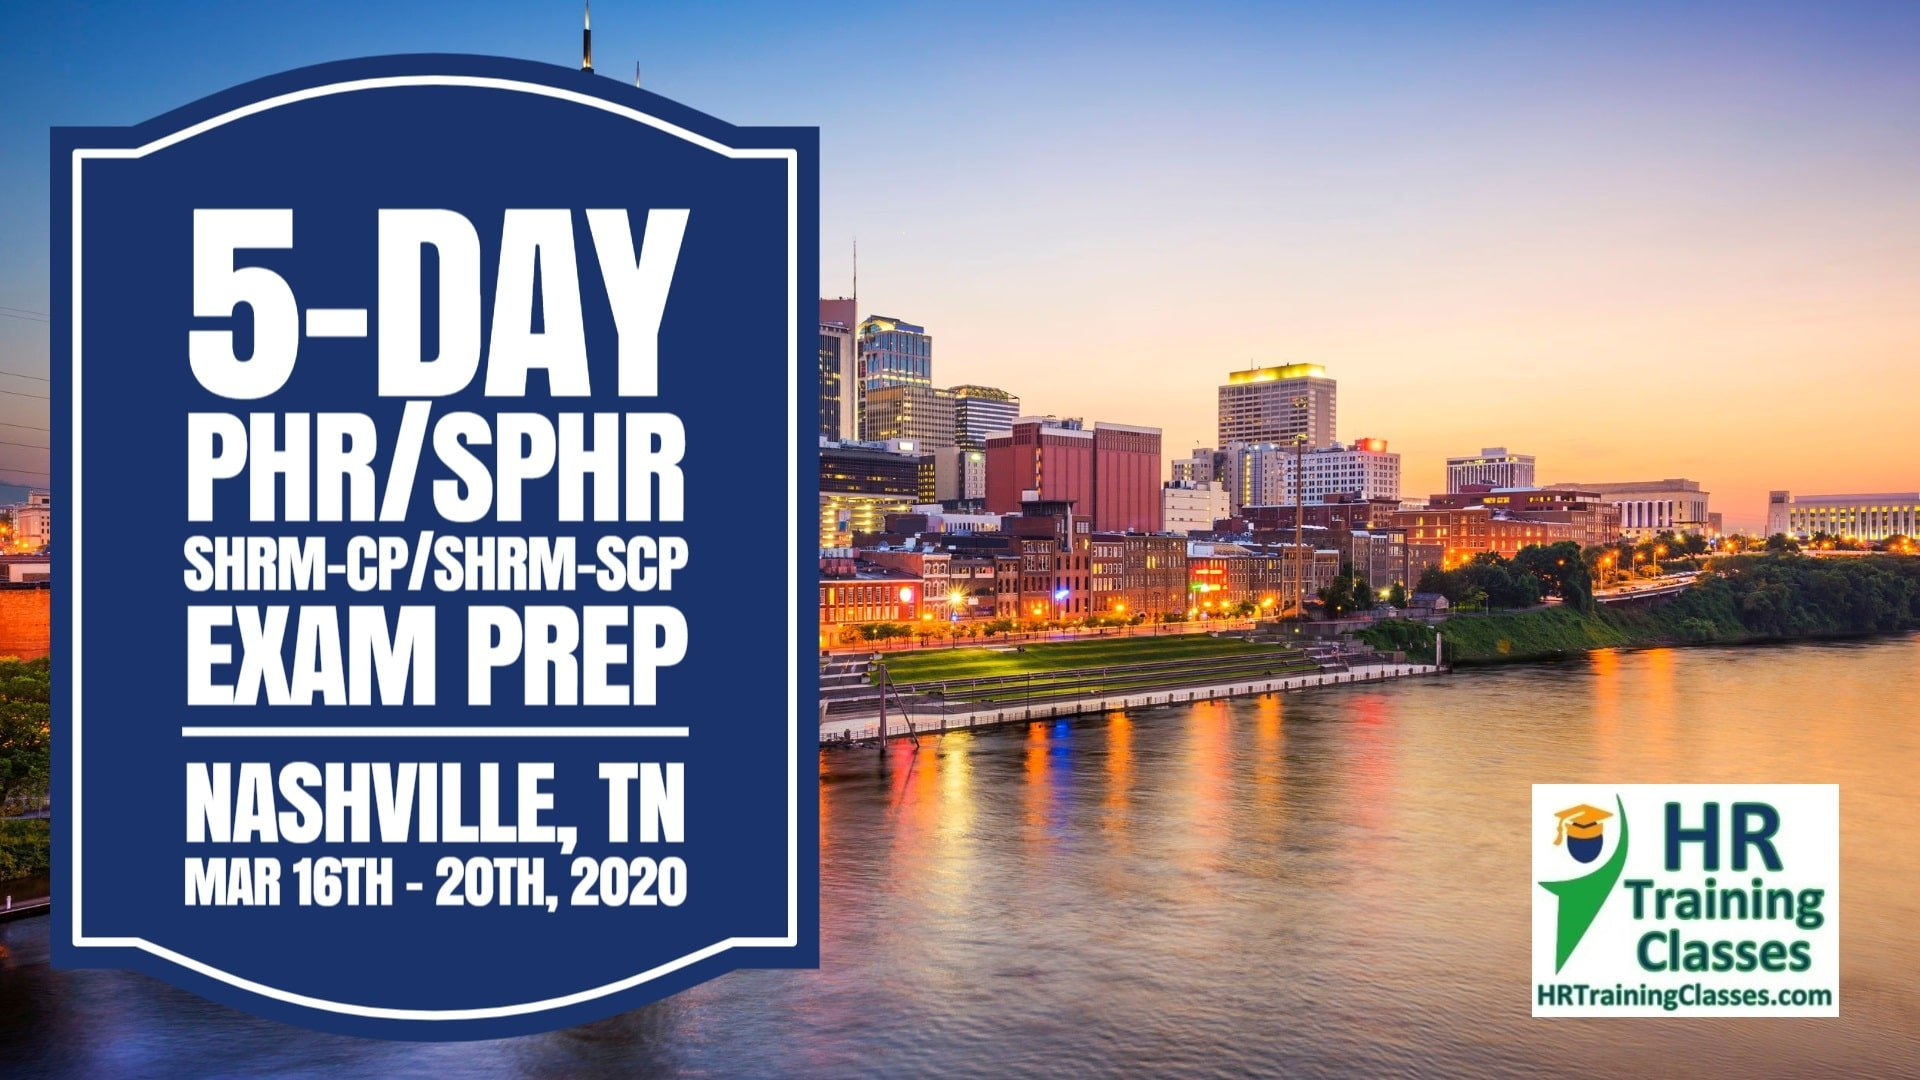 5 Day SHRM-CP, SHRM-SCP, PHR, SPHR Exam Prep Boot Camp in Nashville, TN (Starts 3/16/2020)